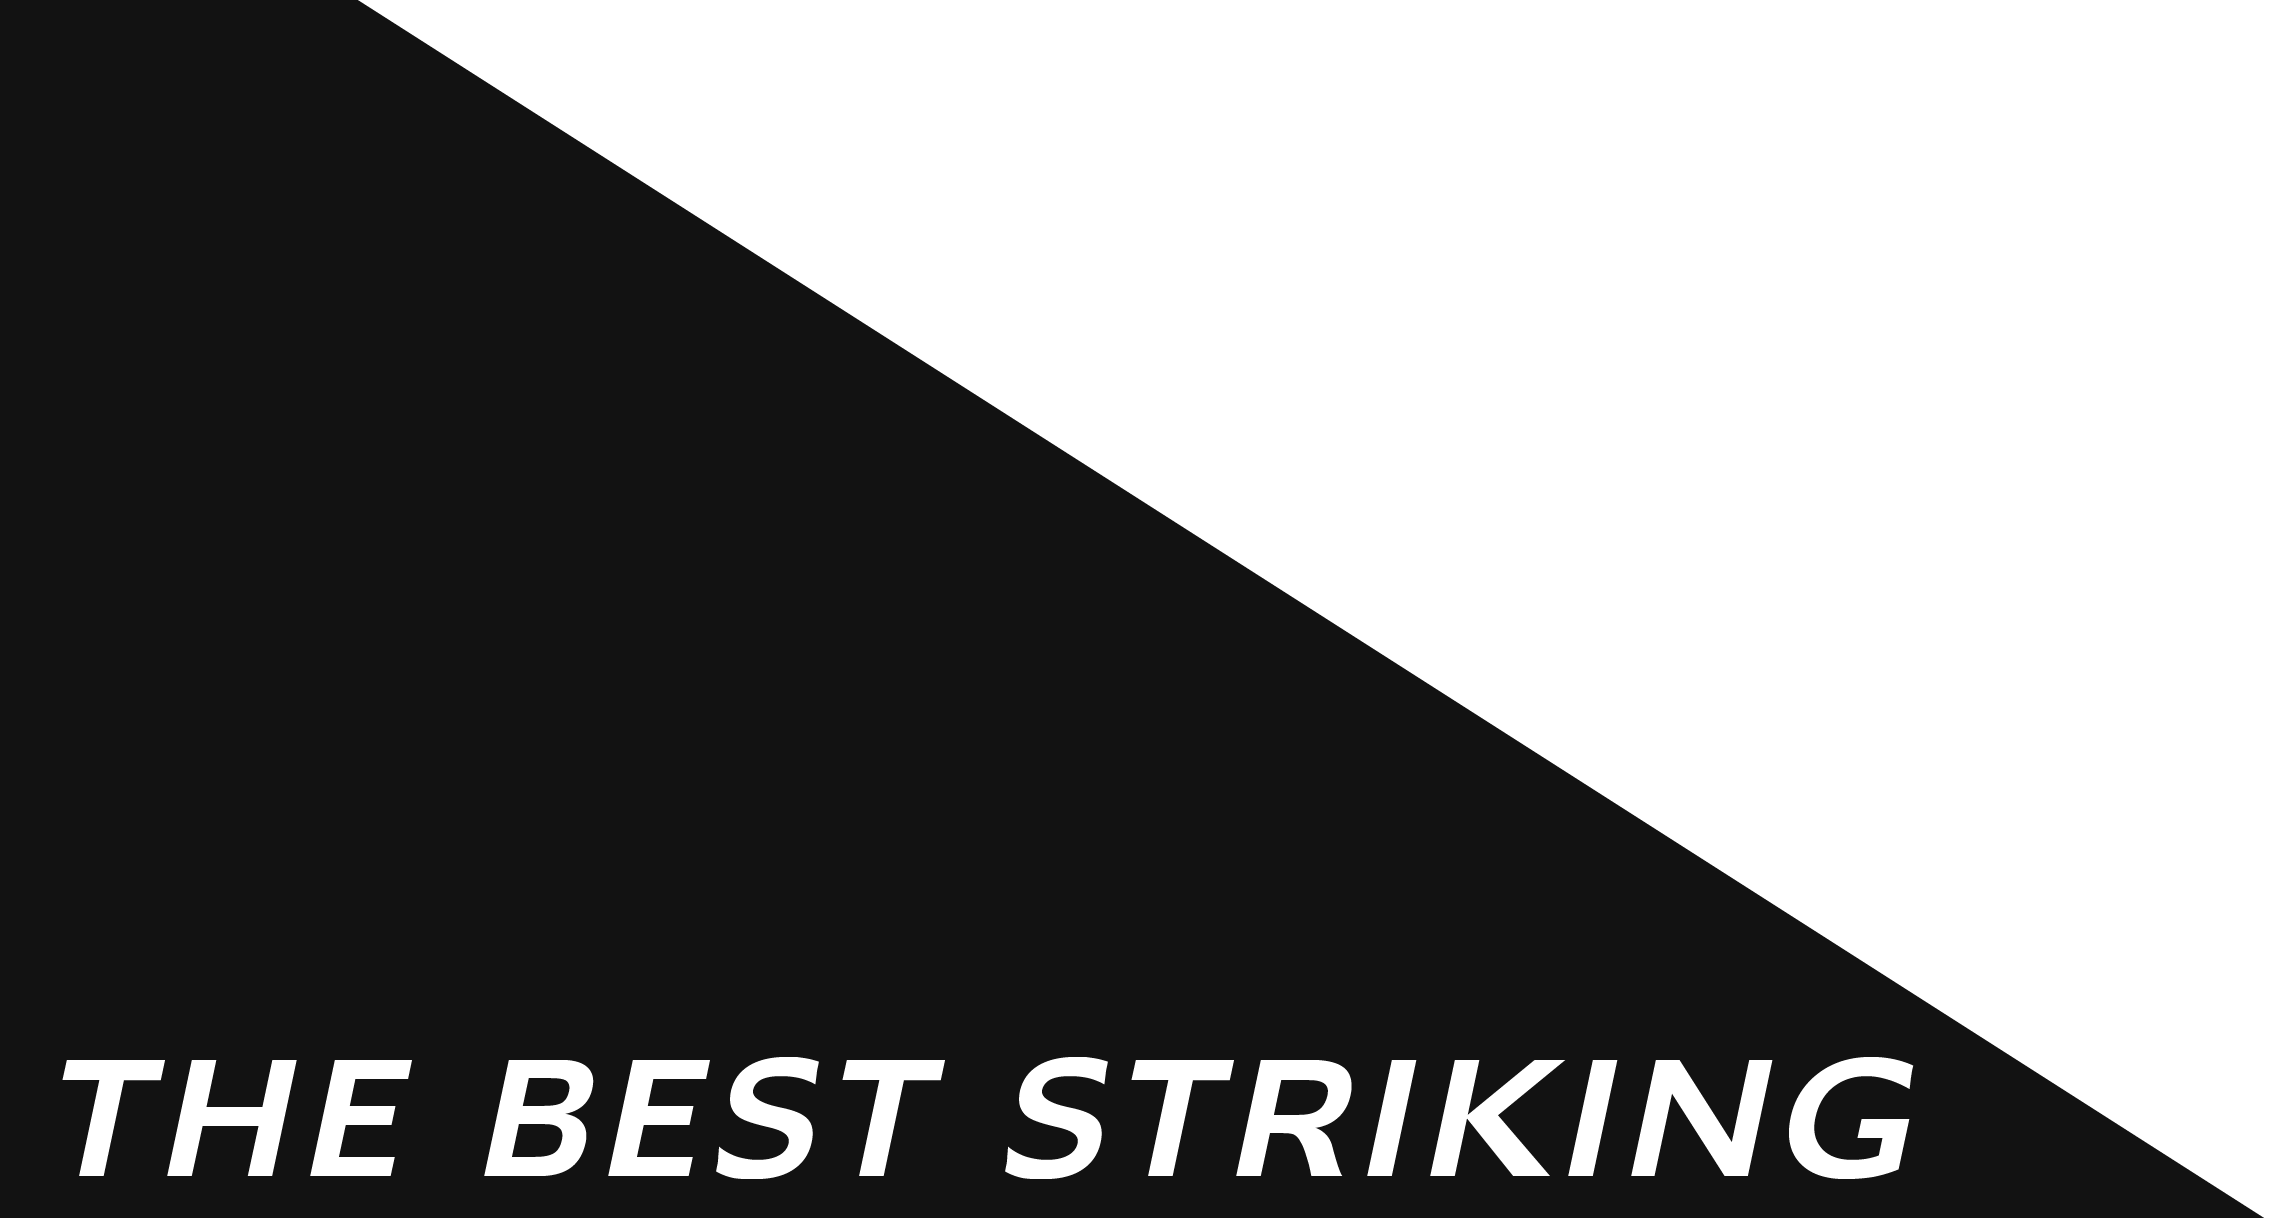 THE BEST STRIKING